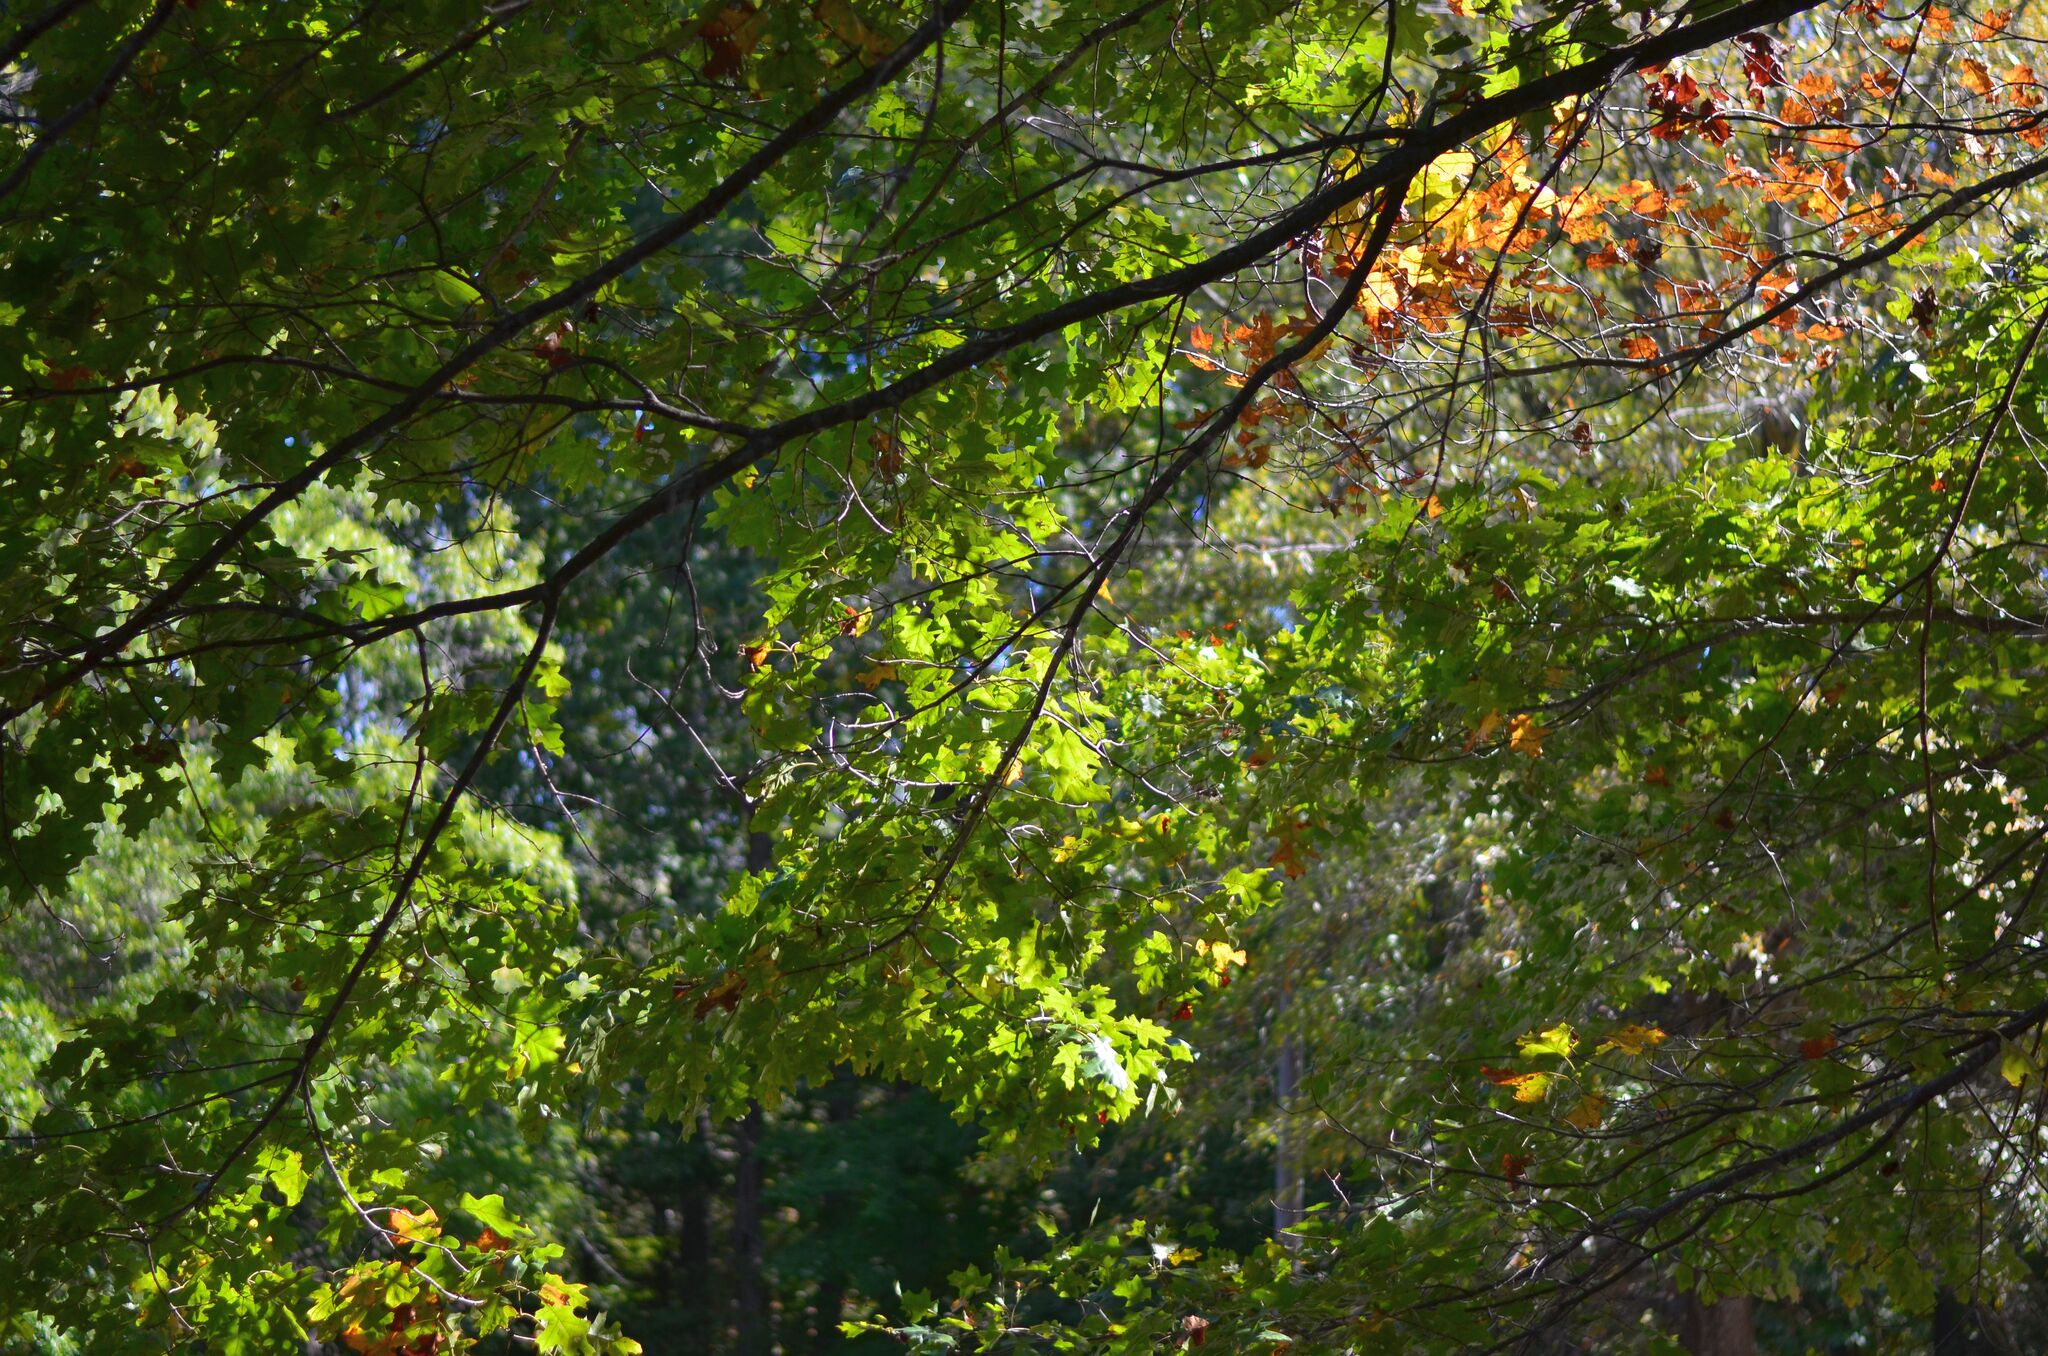 Light through the trees -- taken on our Field Trip to the Haw River State Park, 10/20/2017. One of many gorgeous views to look forward to when you join us in 2018.